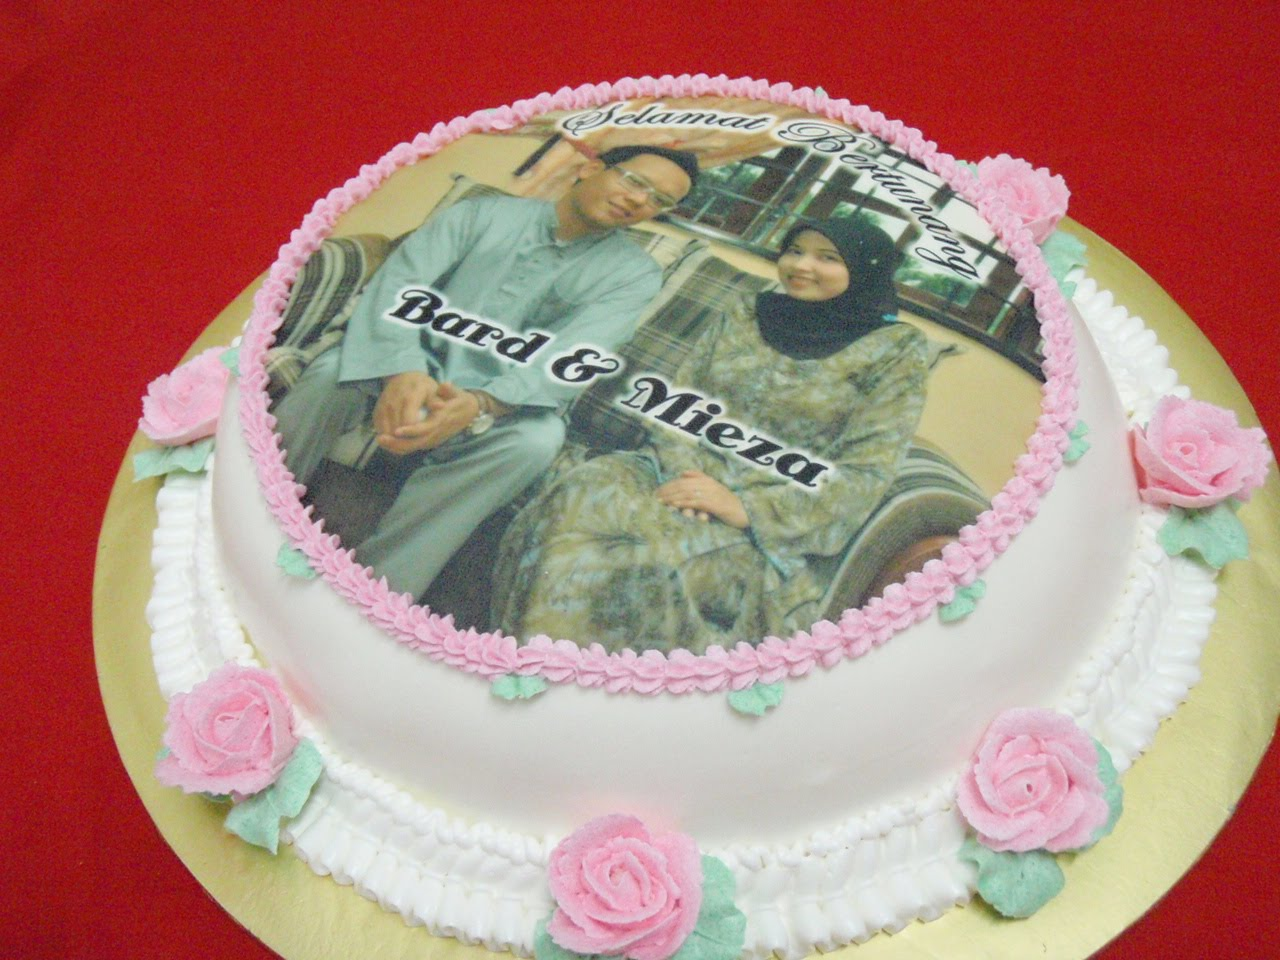 simple and sweet engagement cake for Bard and Mieza.